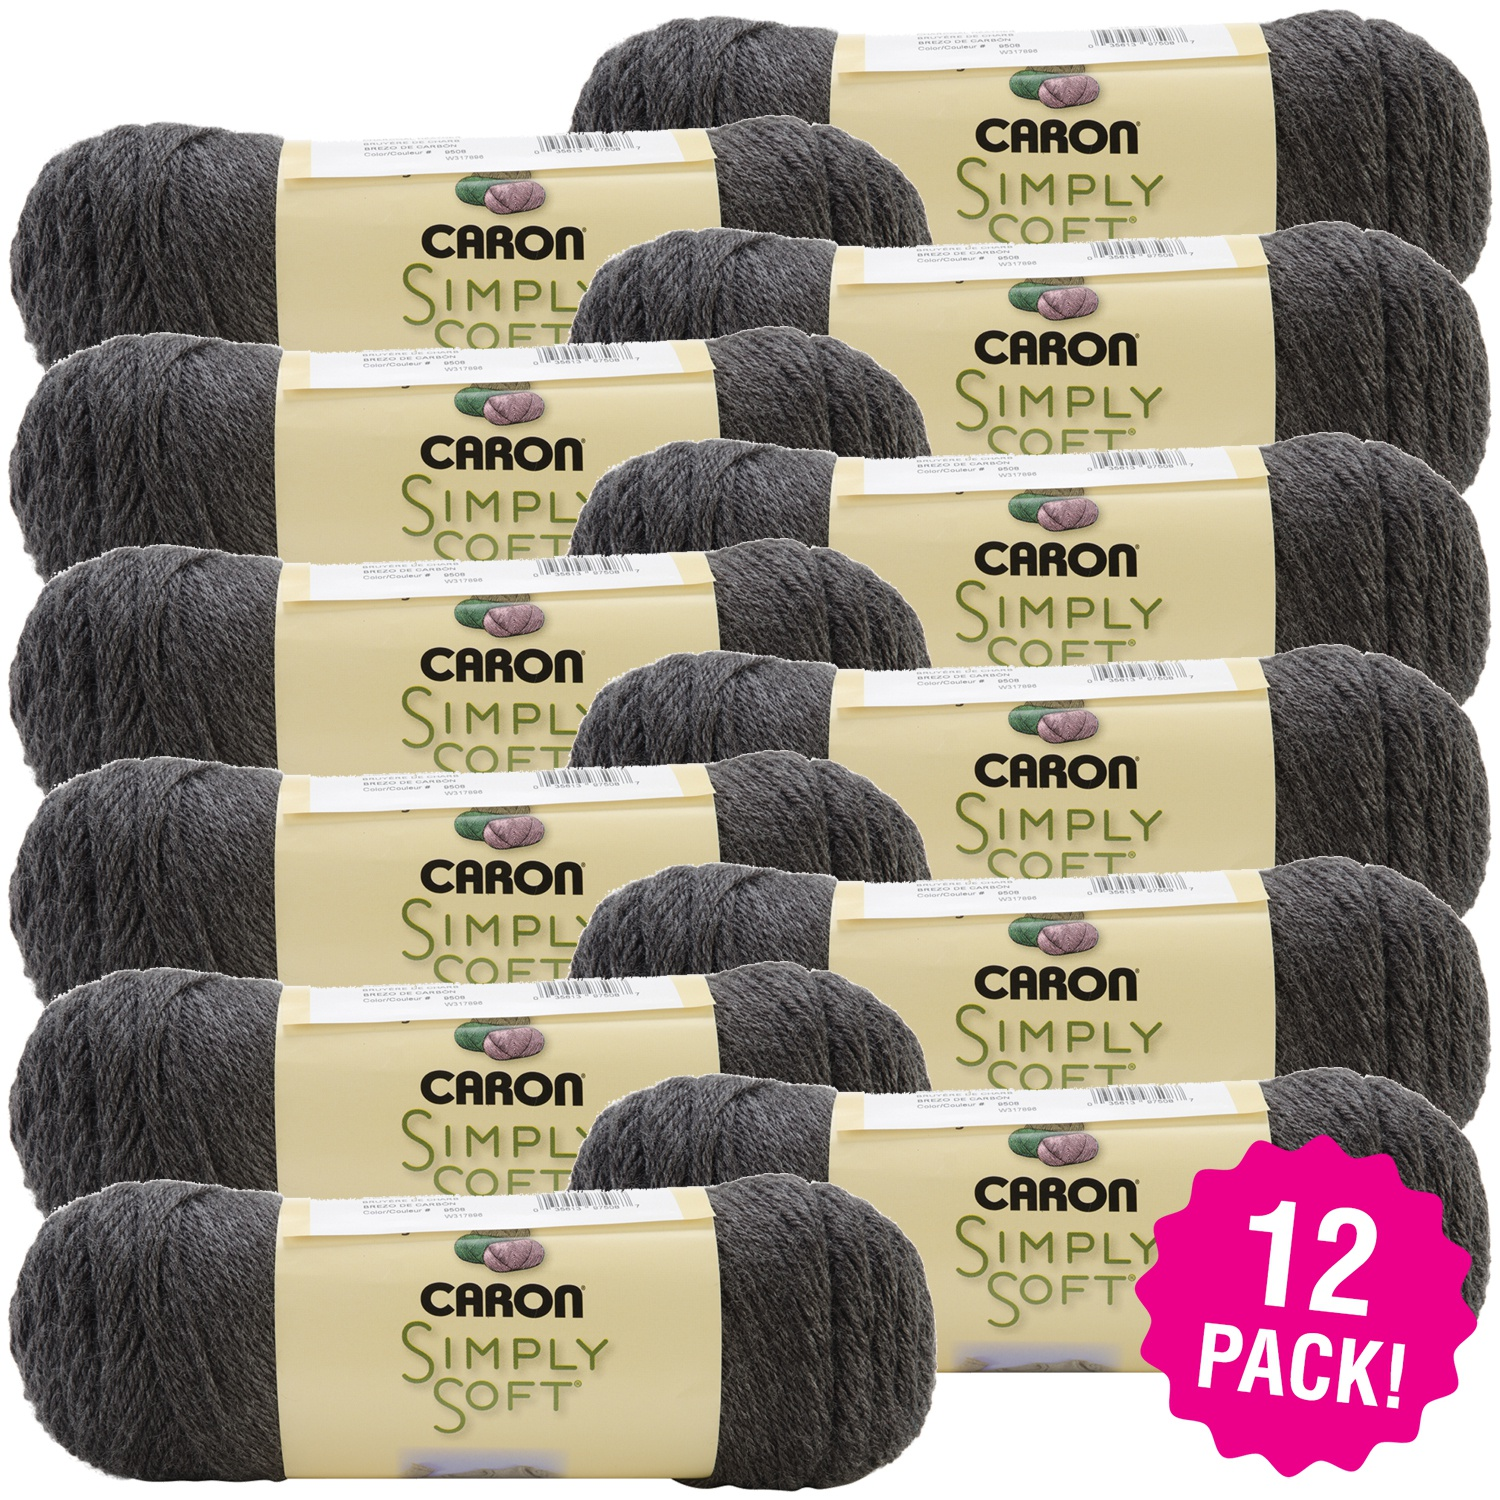 Caron Simply Soft Heather Yarn - Charcoal, Multipack of 12